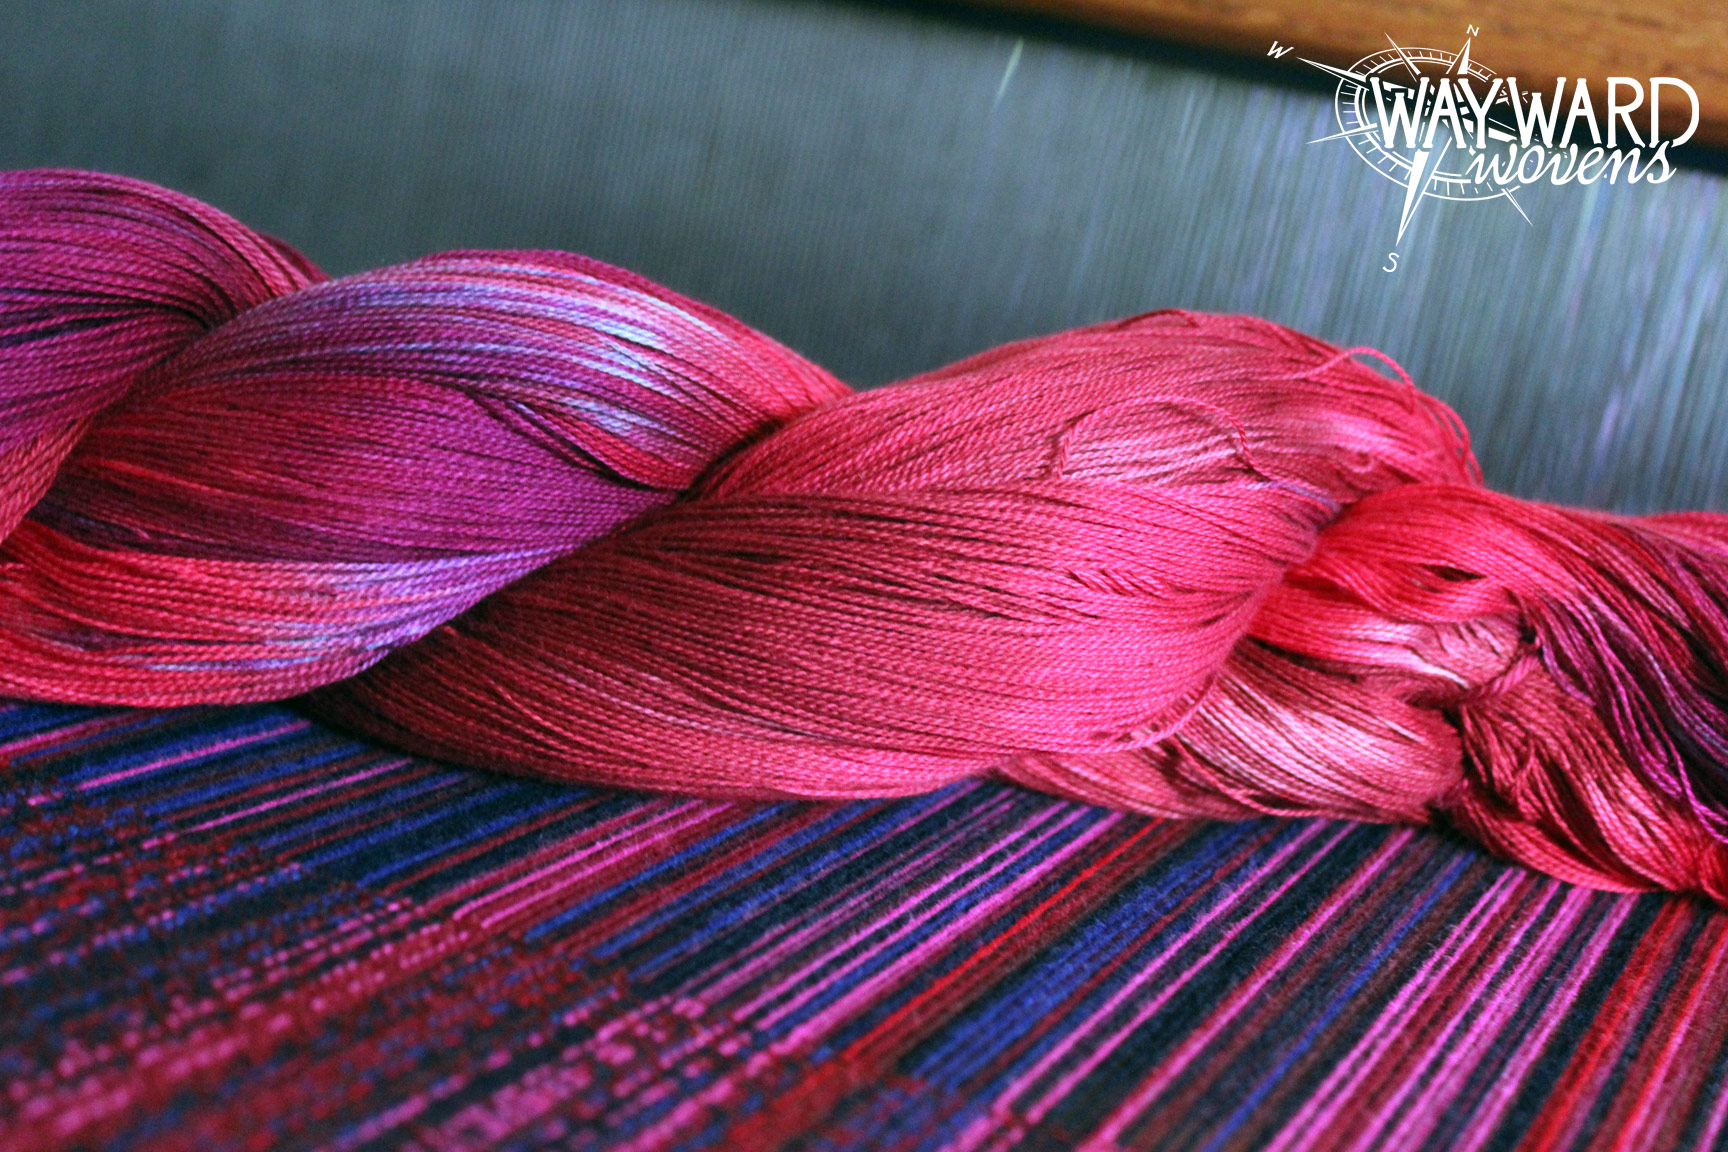 Woven cloth with dyed weft skein